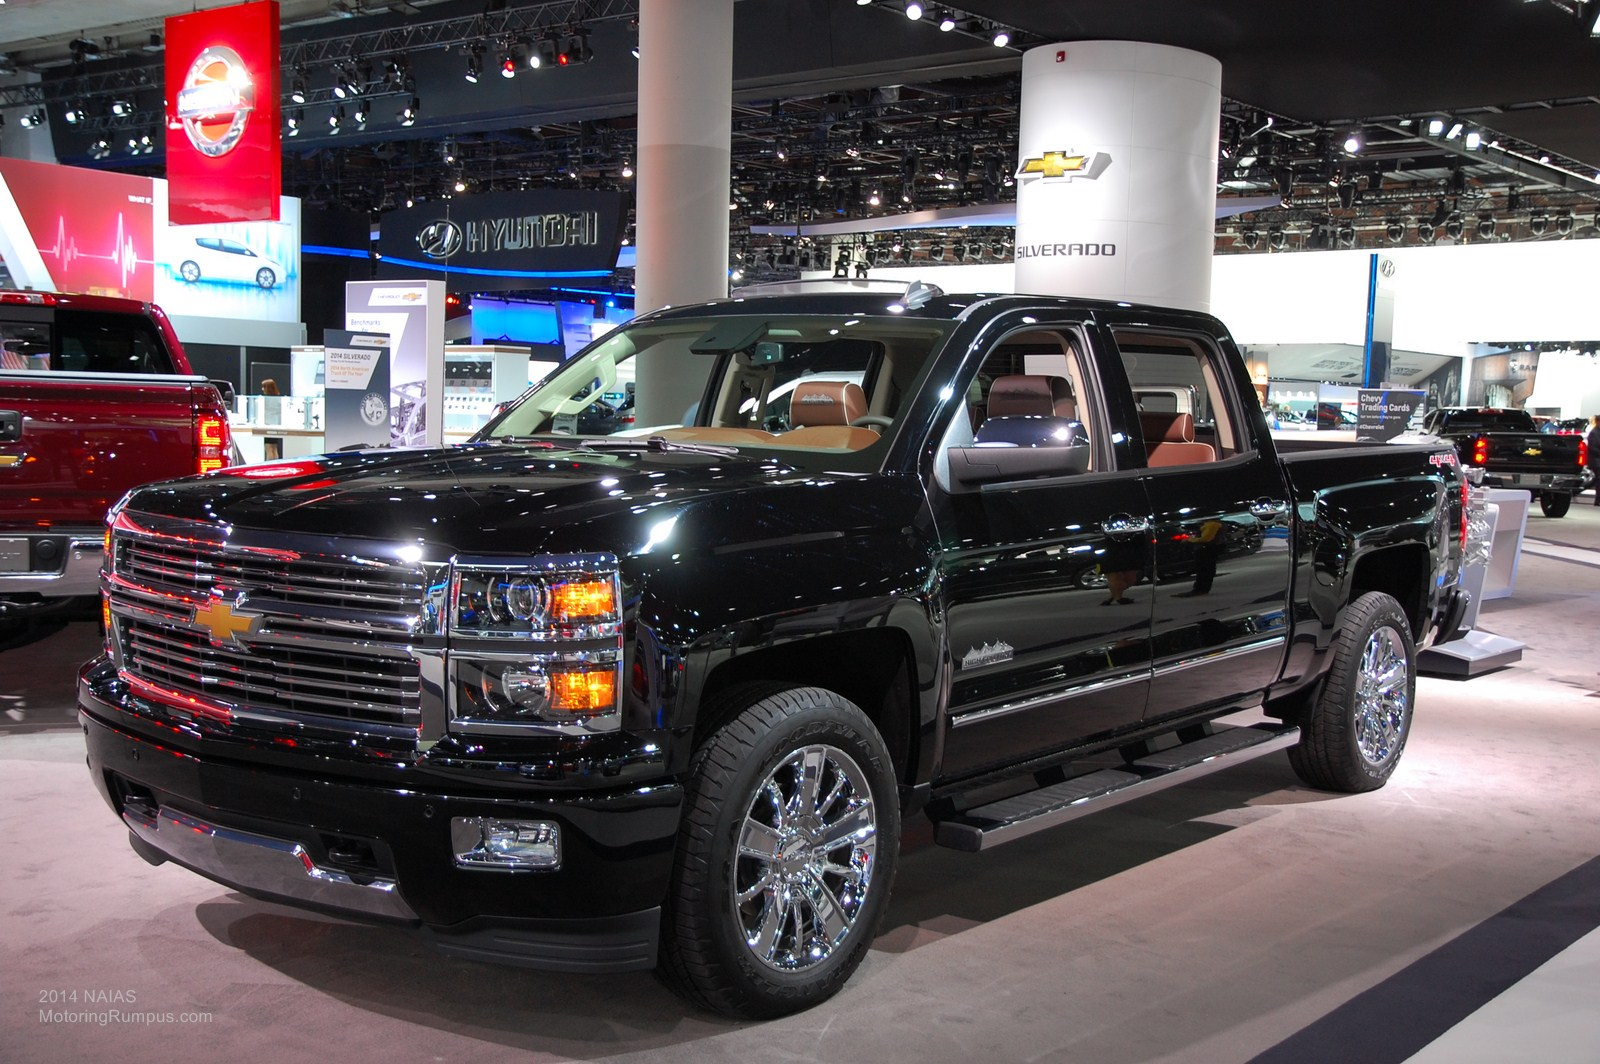 naias 2014 chevy wins car and truck of the year awards motoring rumpus. Black Bedroom Furniture Sets. Home Design Ideas